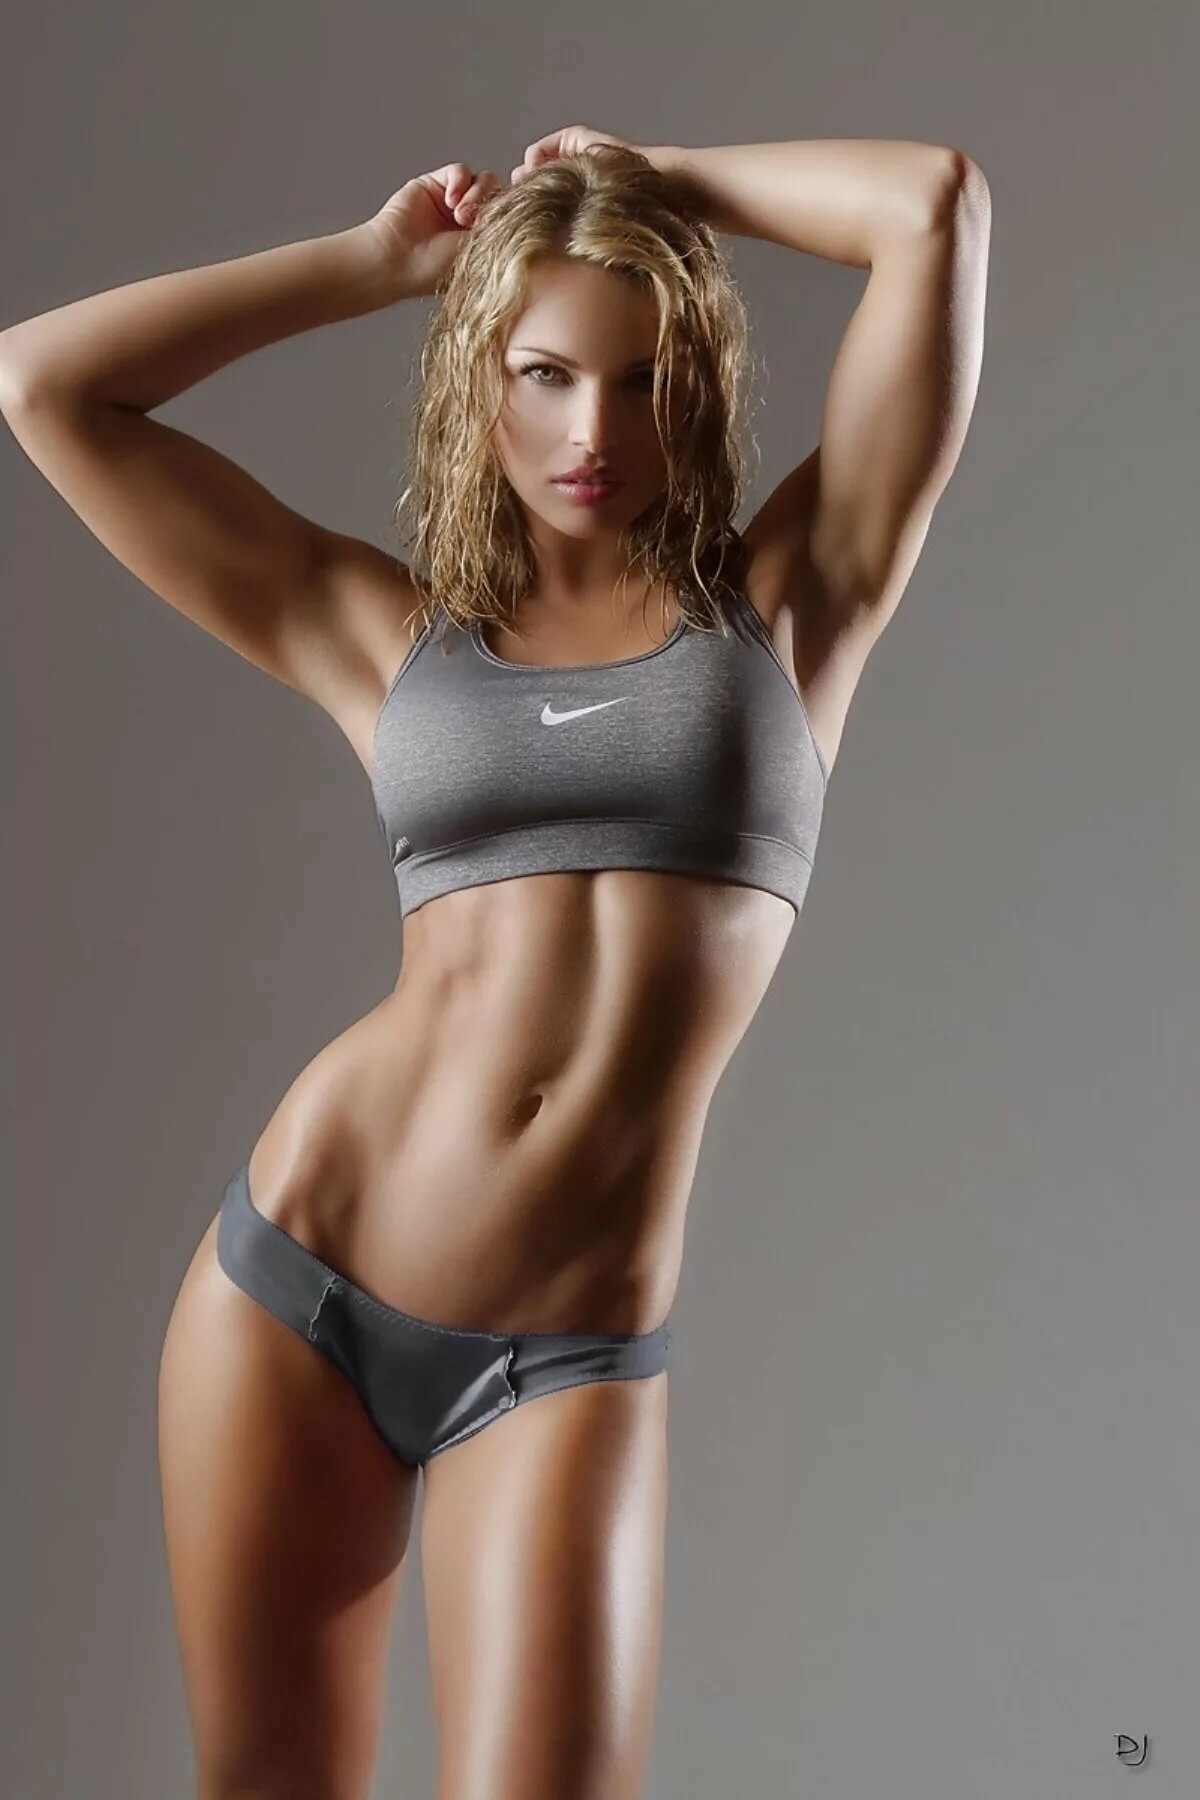 Nude Athletic Girls